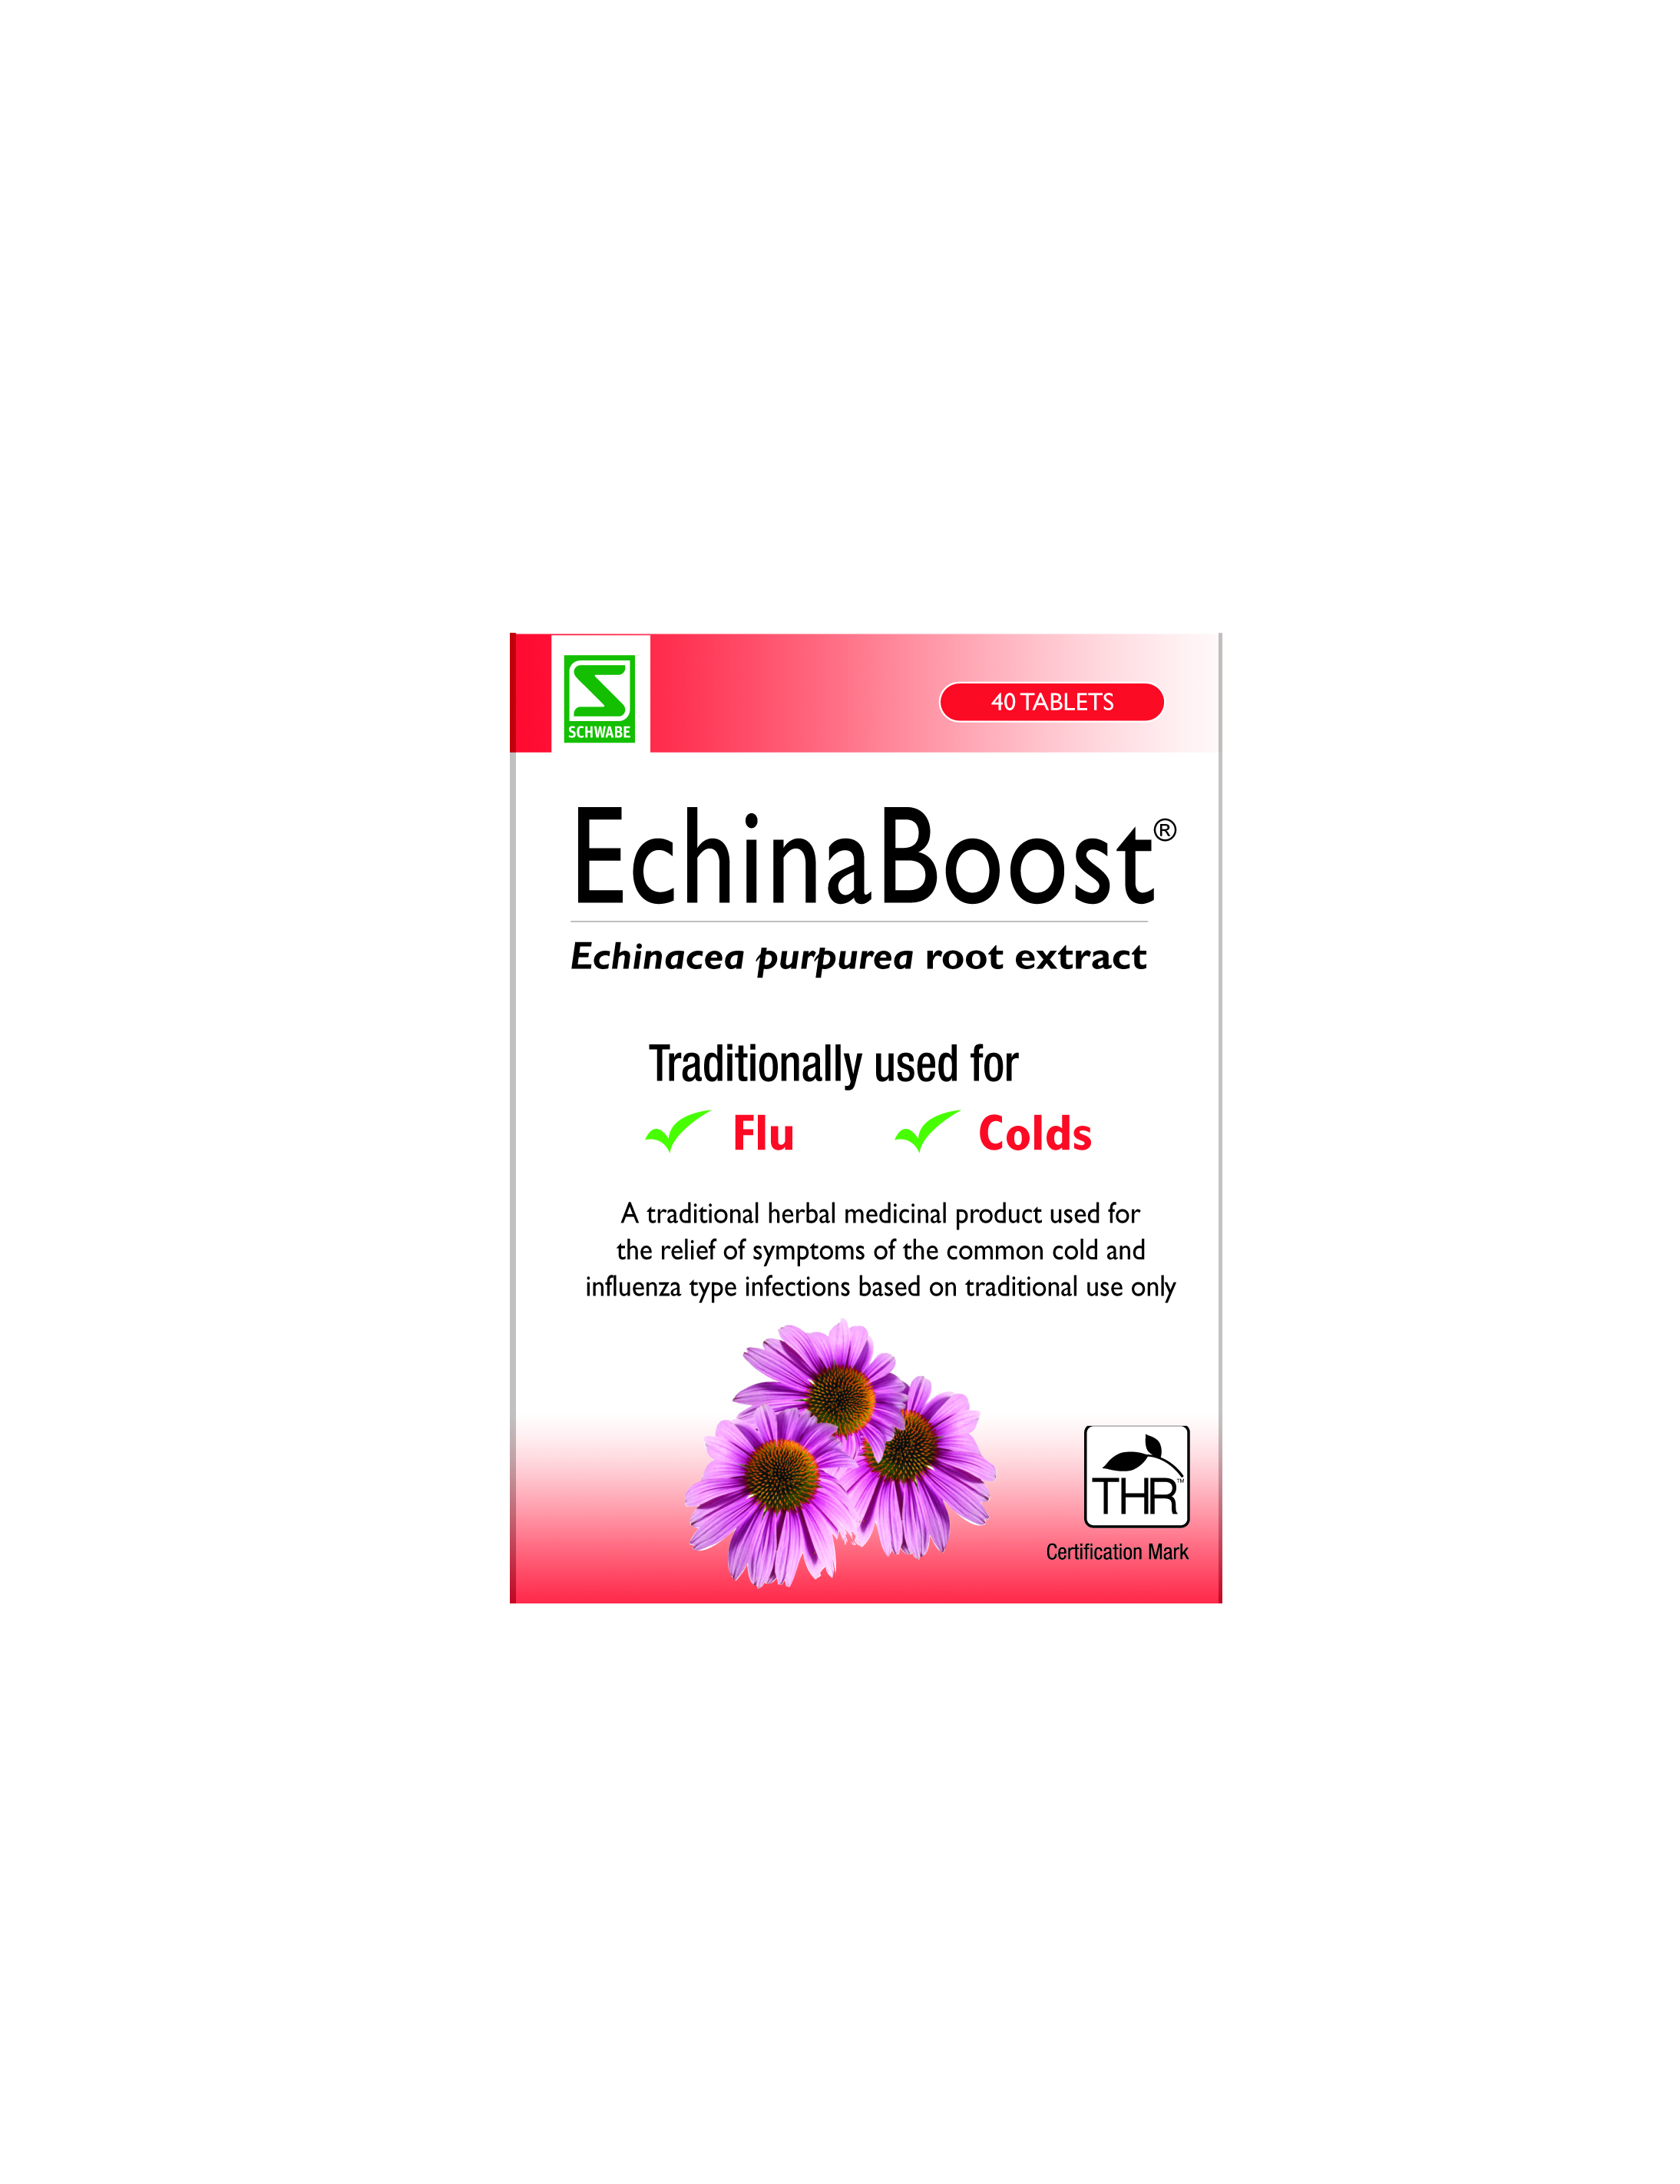 EchinaBoost pack front